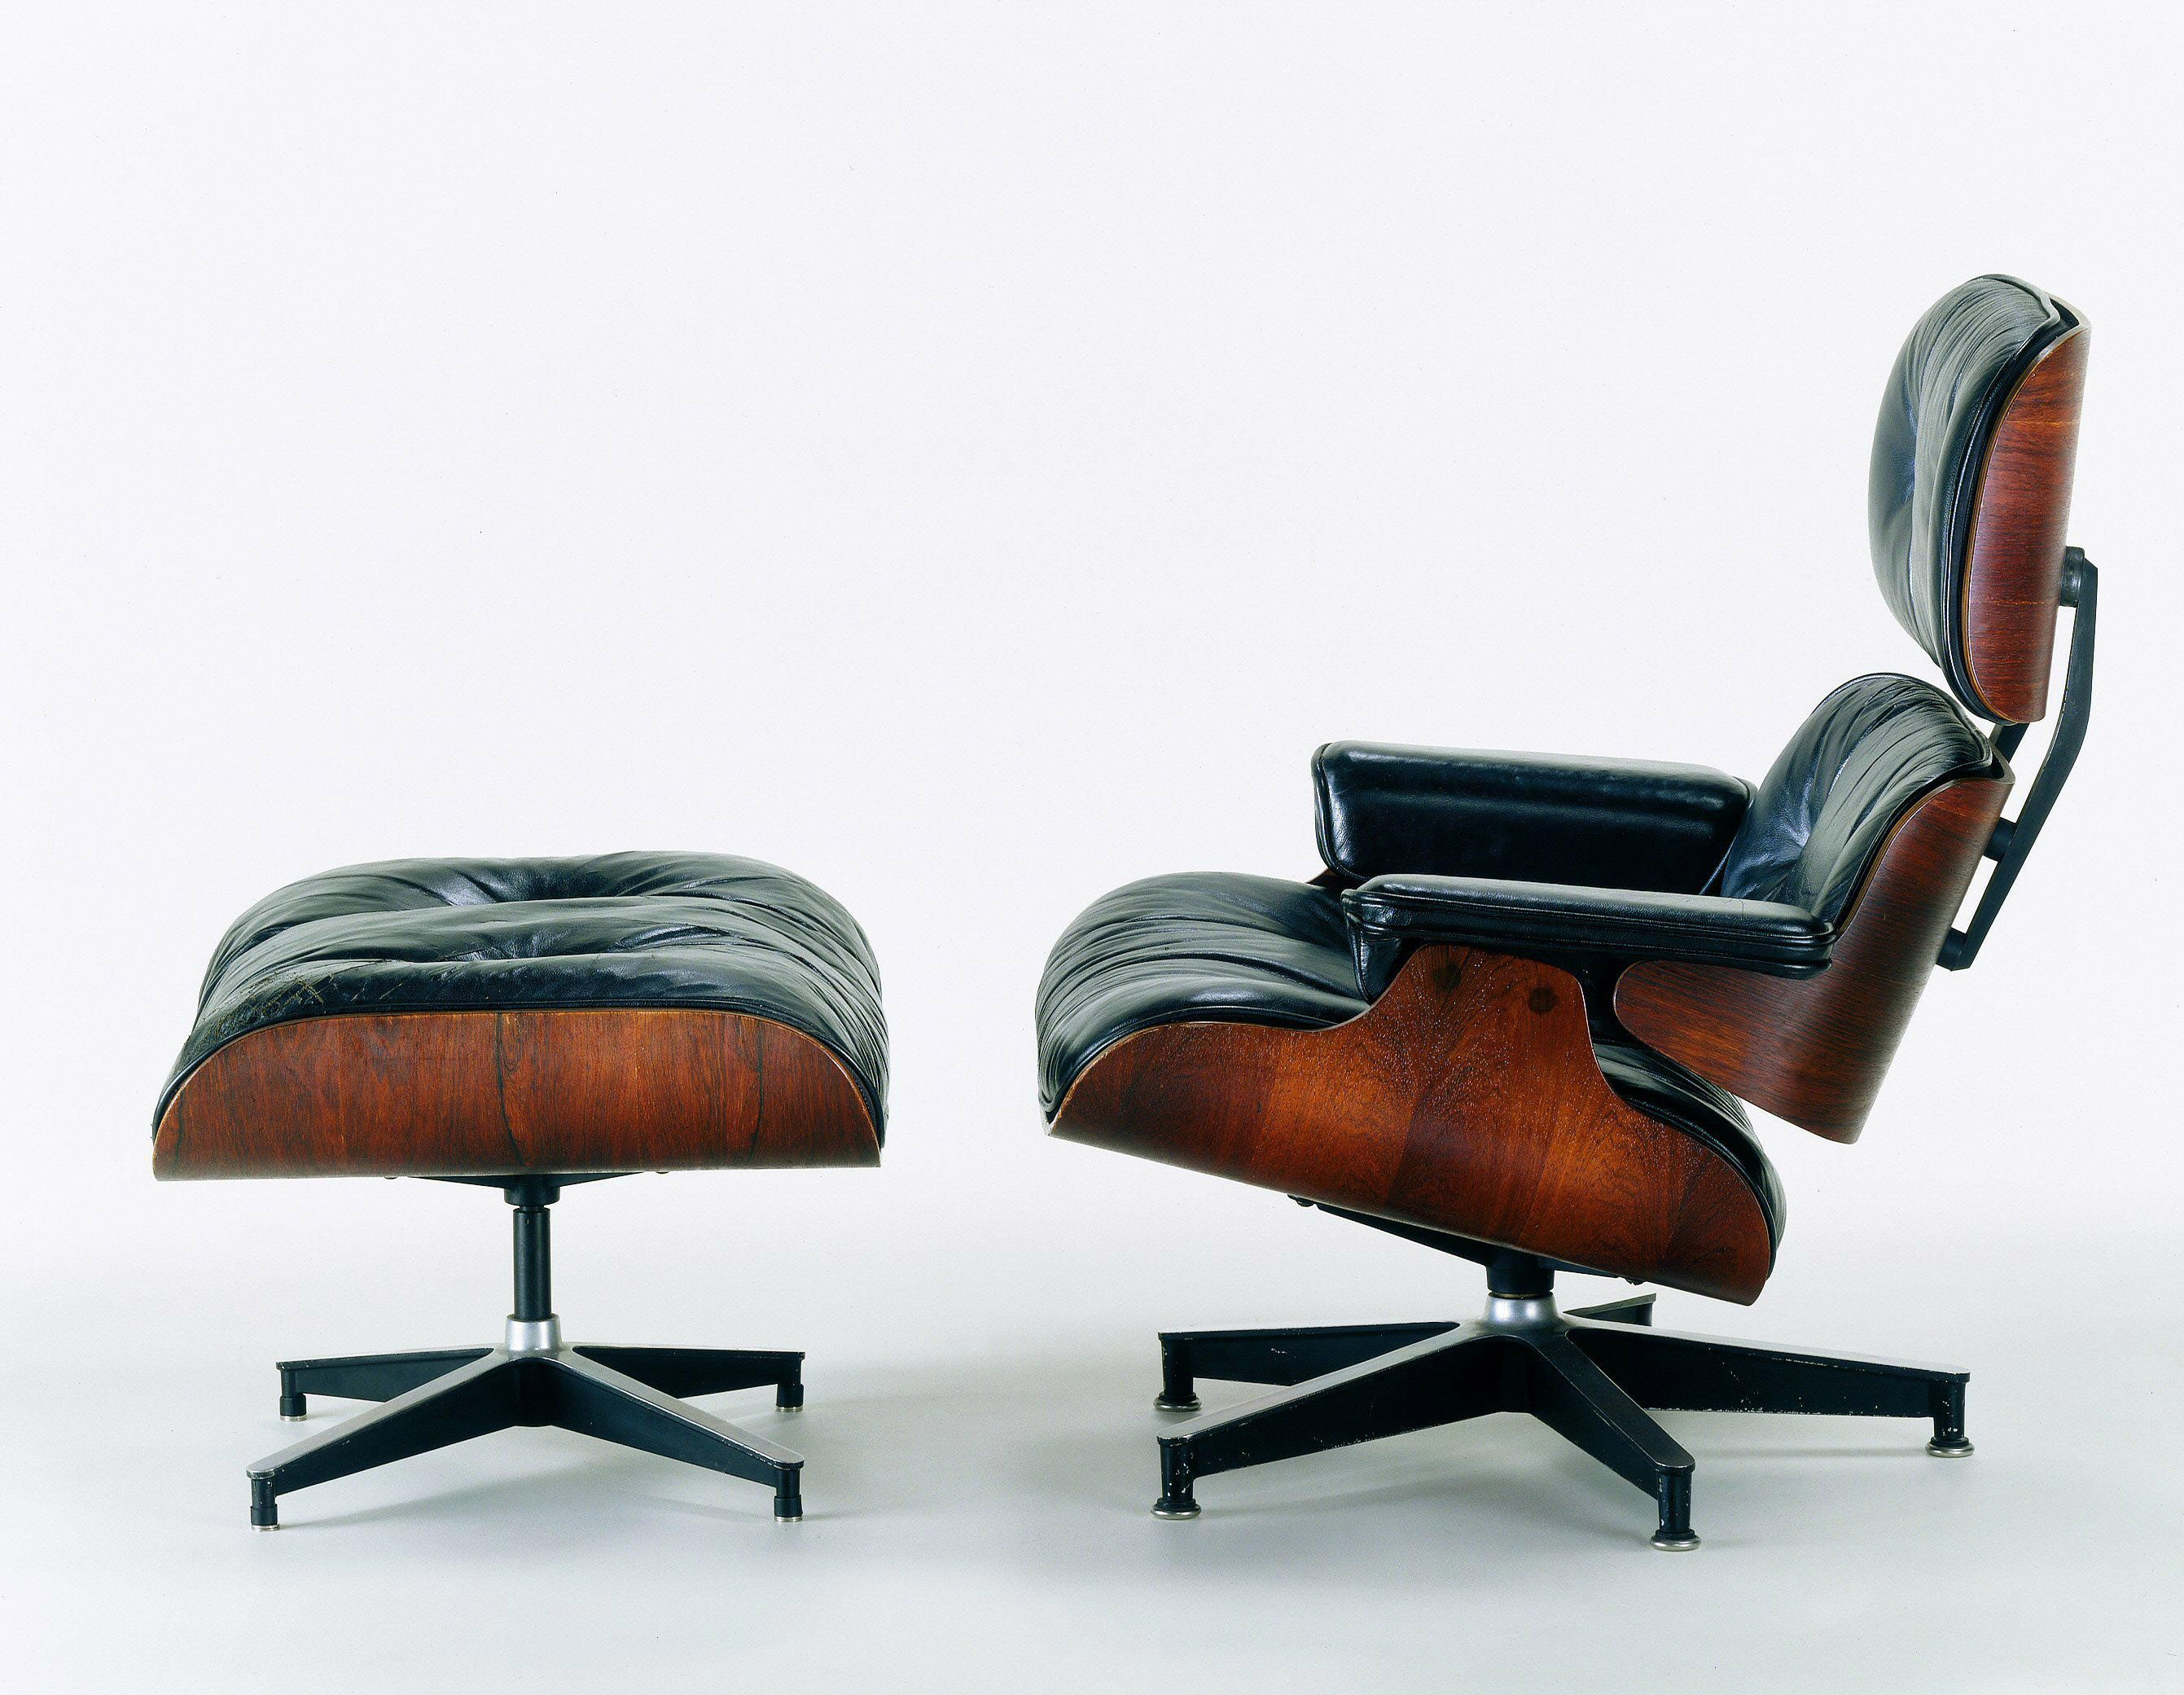 The Eames chair by Herman Miller I dream of melting into one of